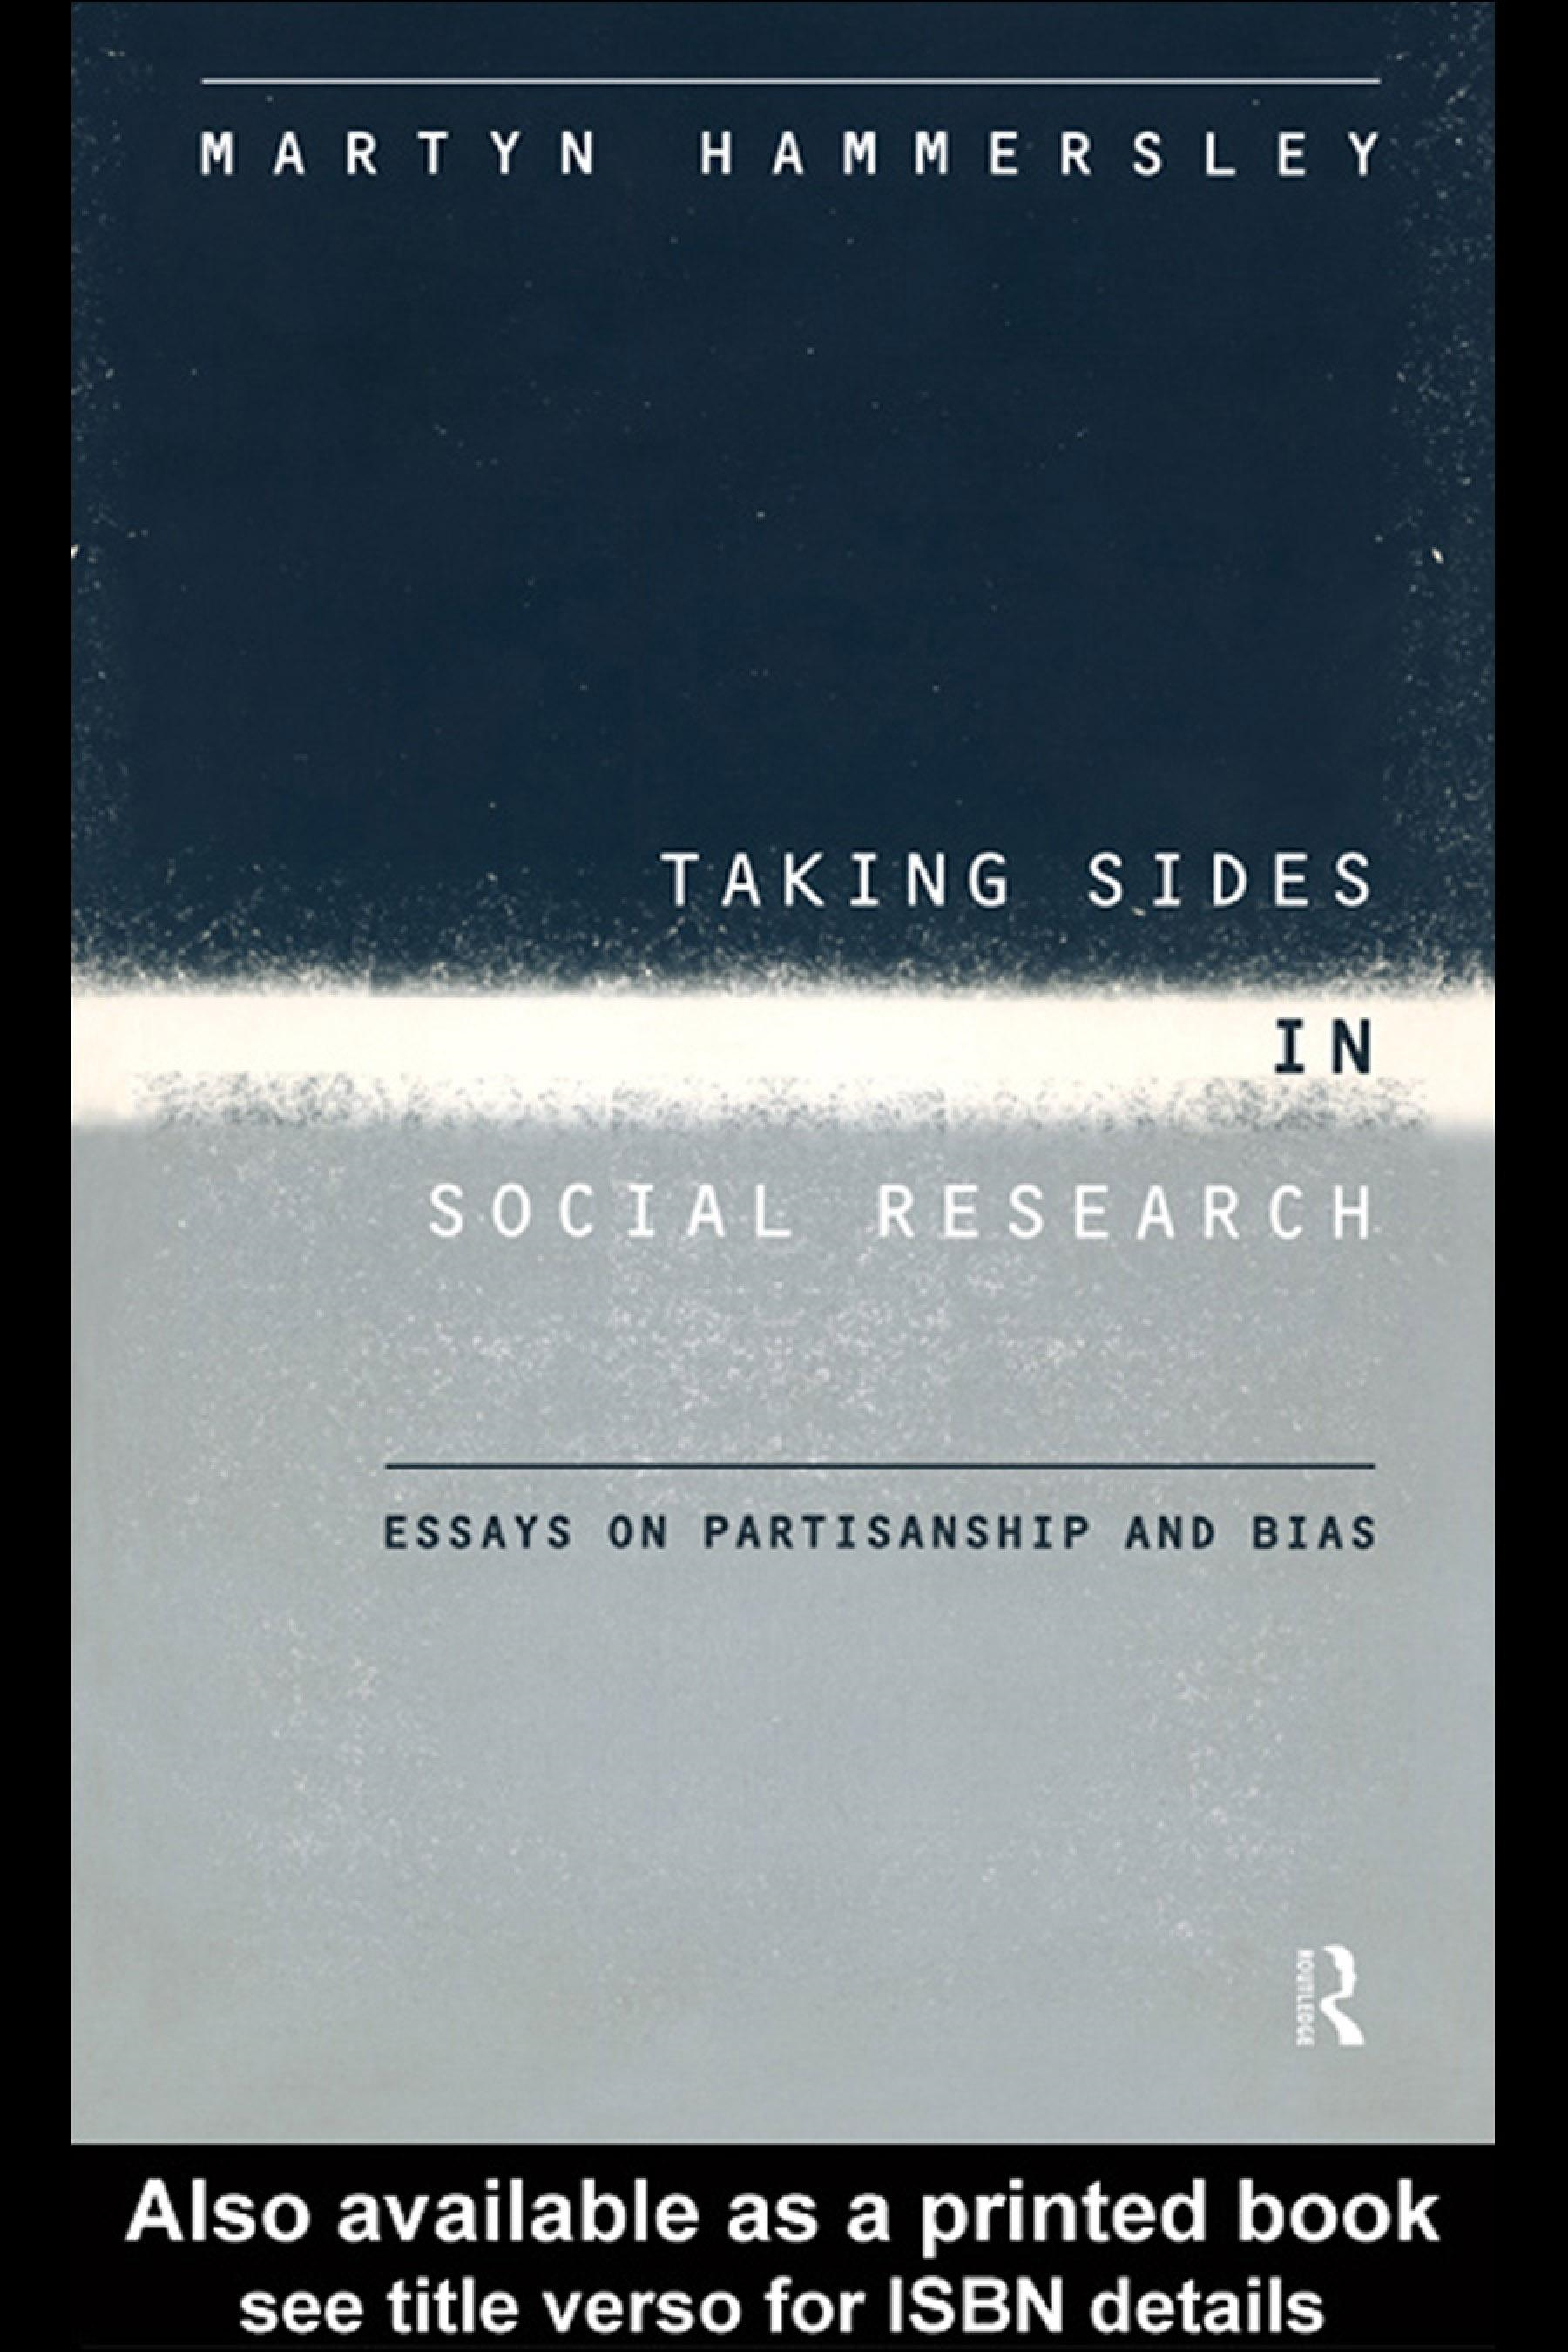 Taking Sides in Social Research: Essays on Partisanship and Bias